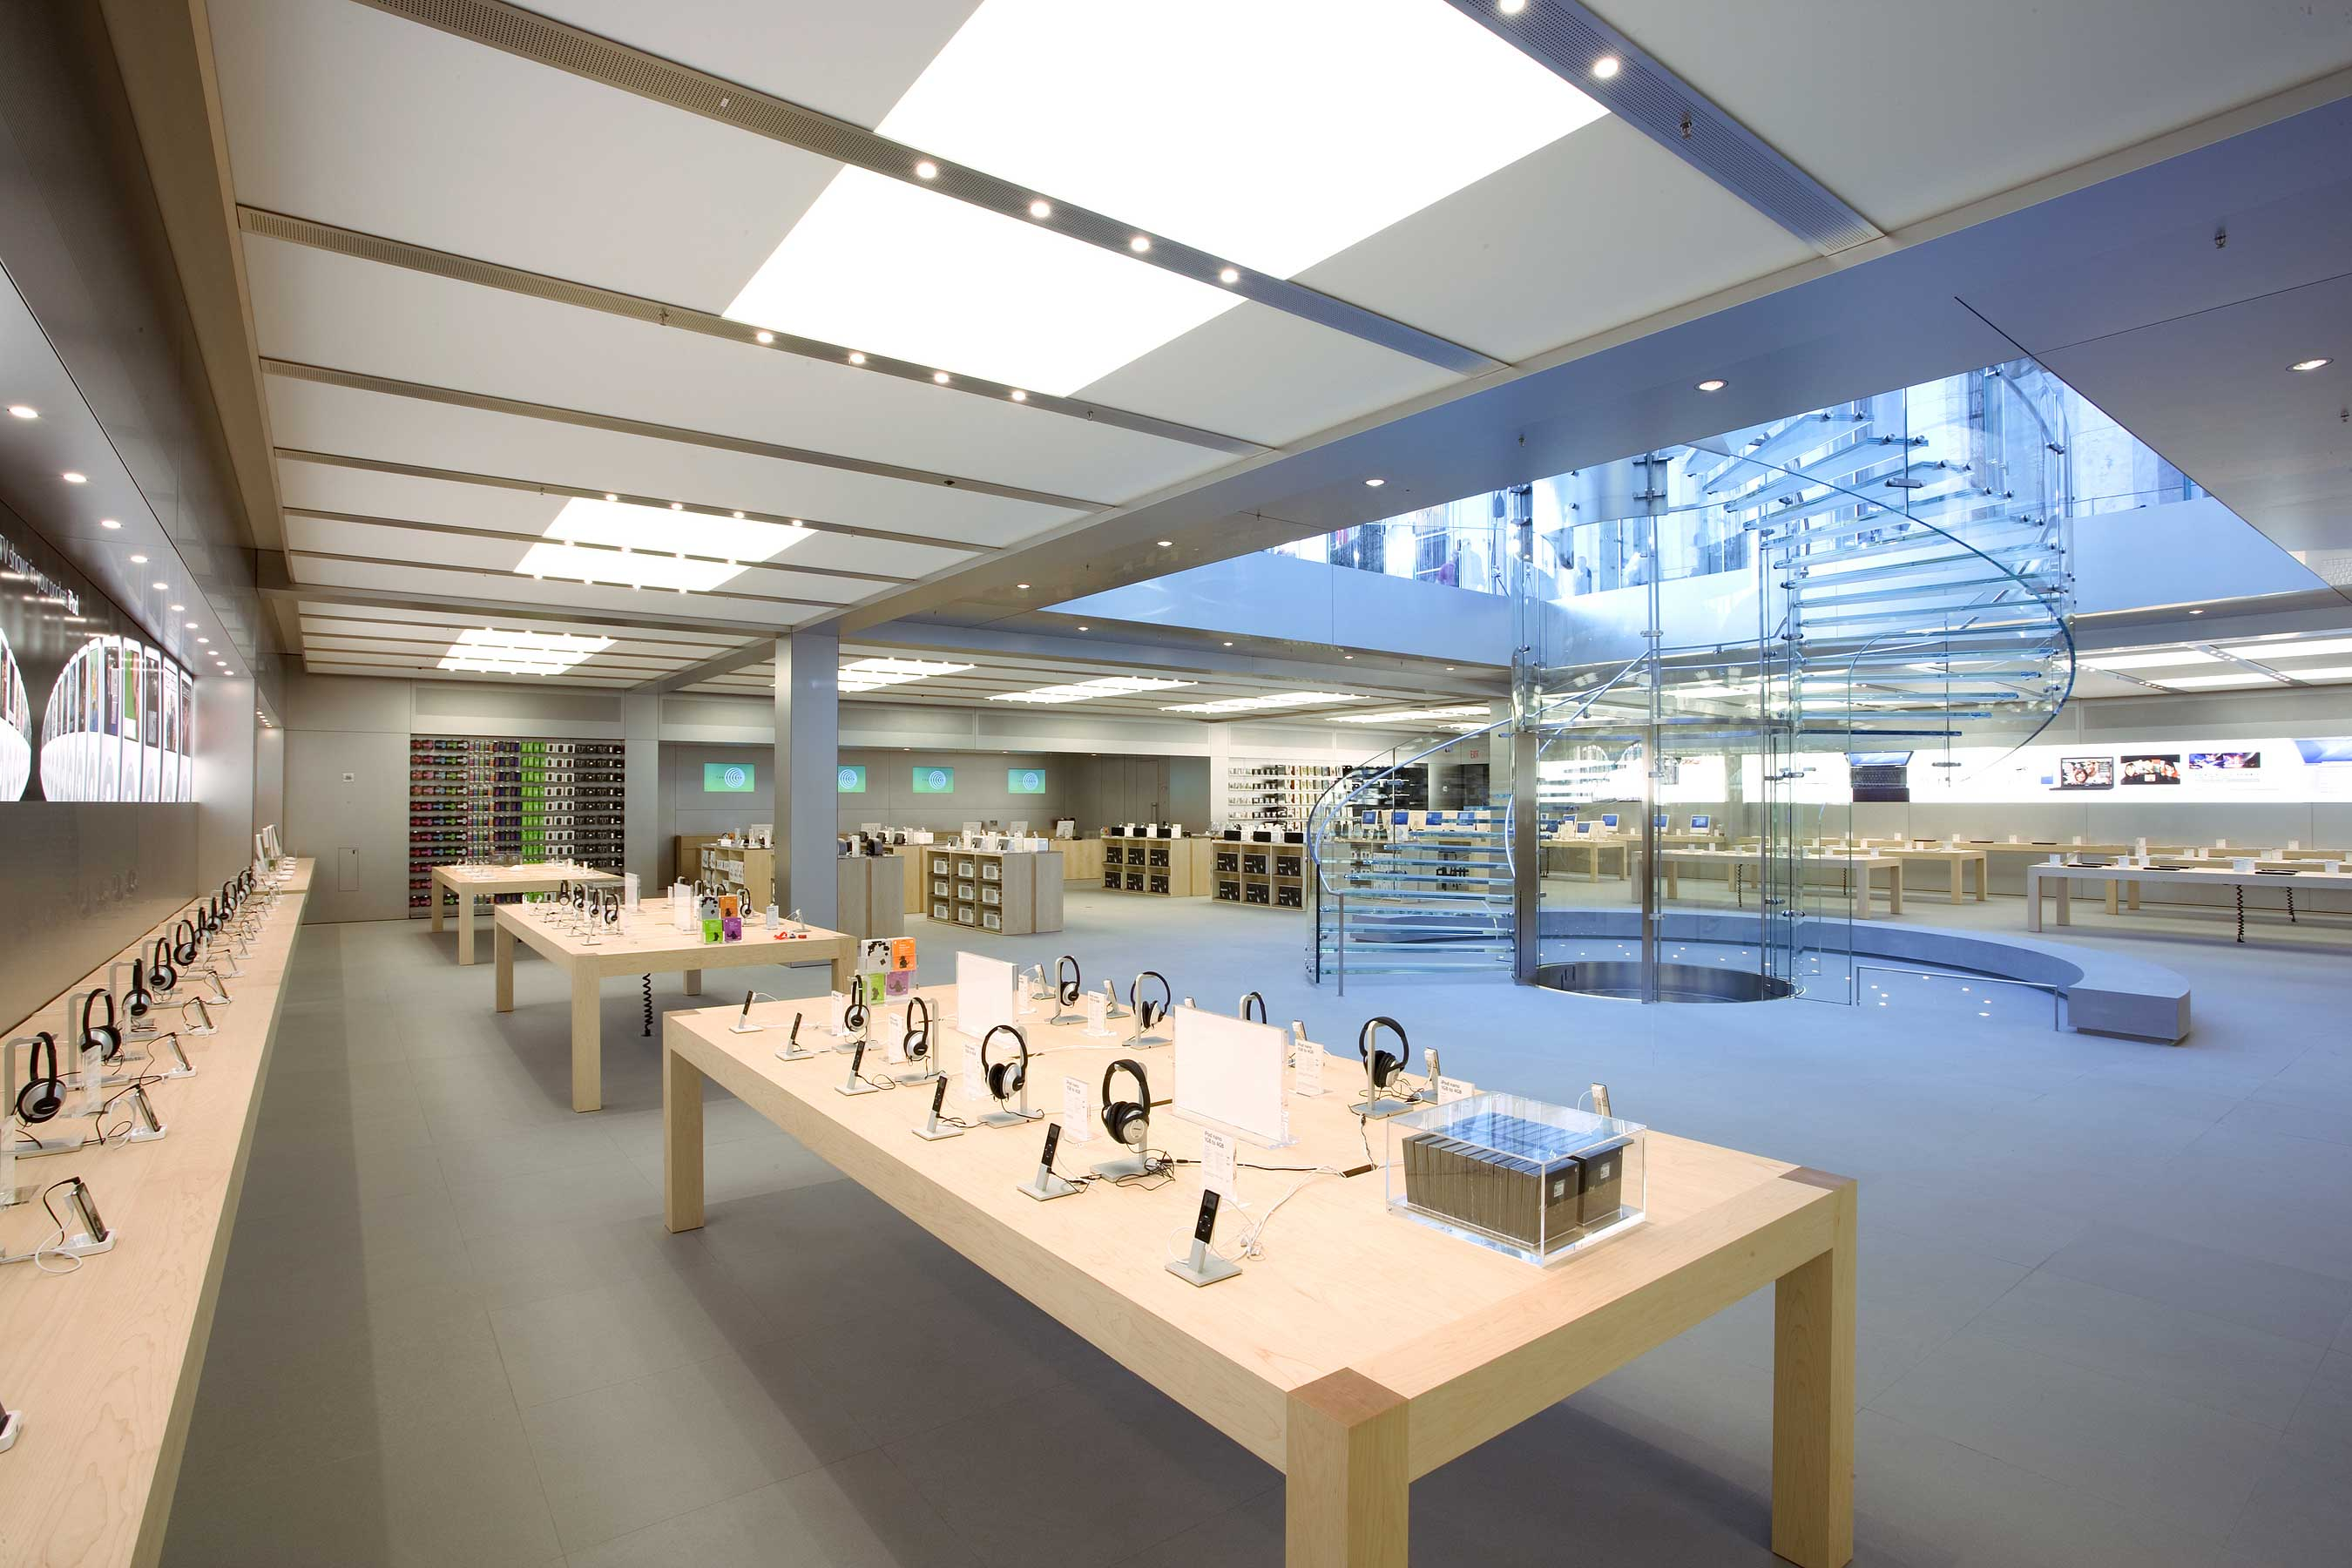 Apple Store-wallpaper-19.jpg